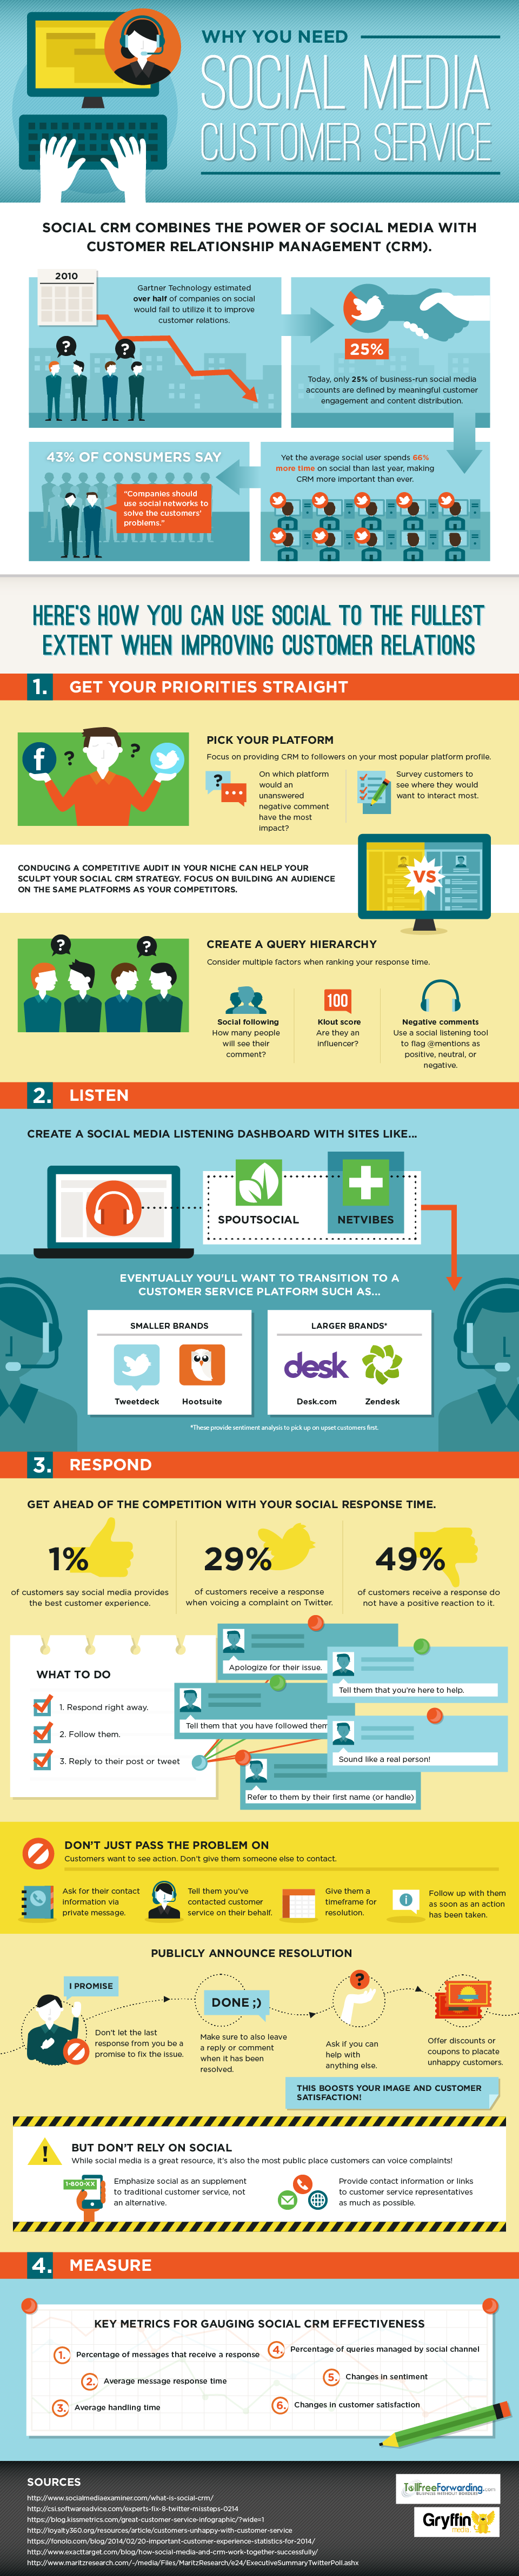 Using Social Media To Improve Relations with your Customer - #infographic #marketing